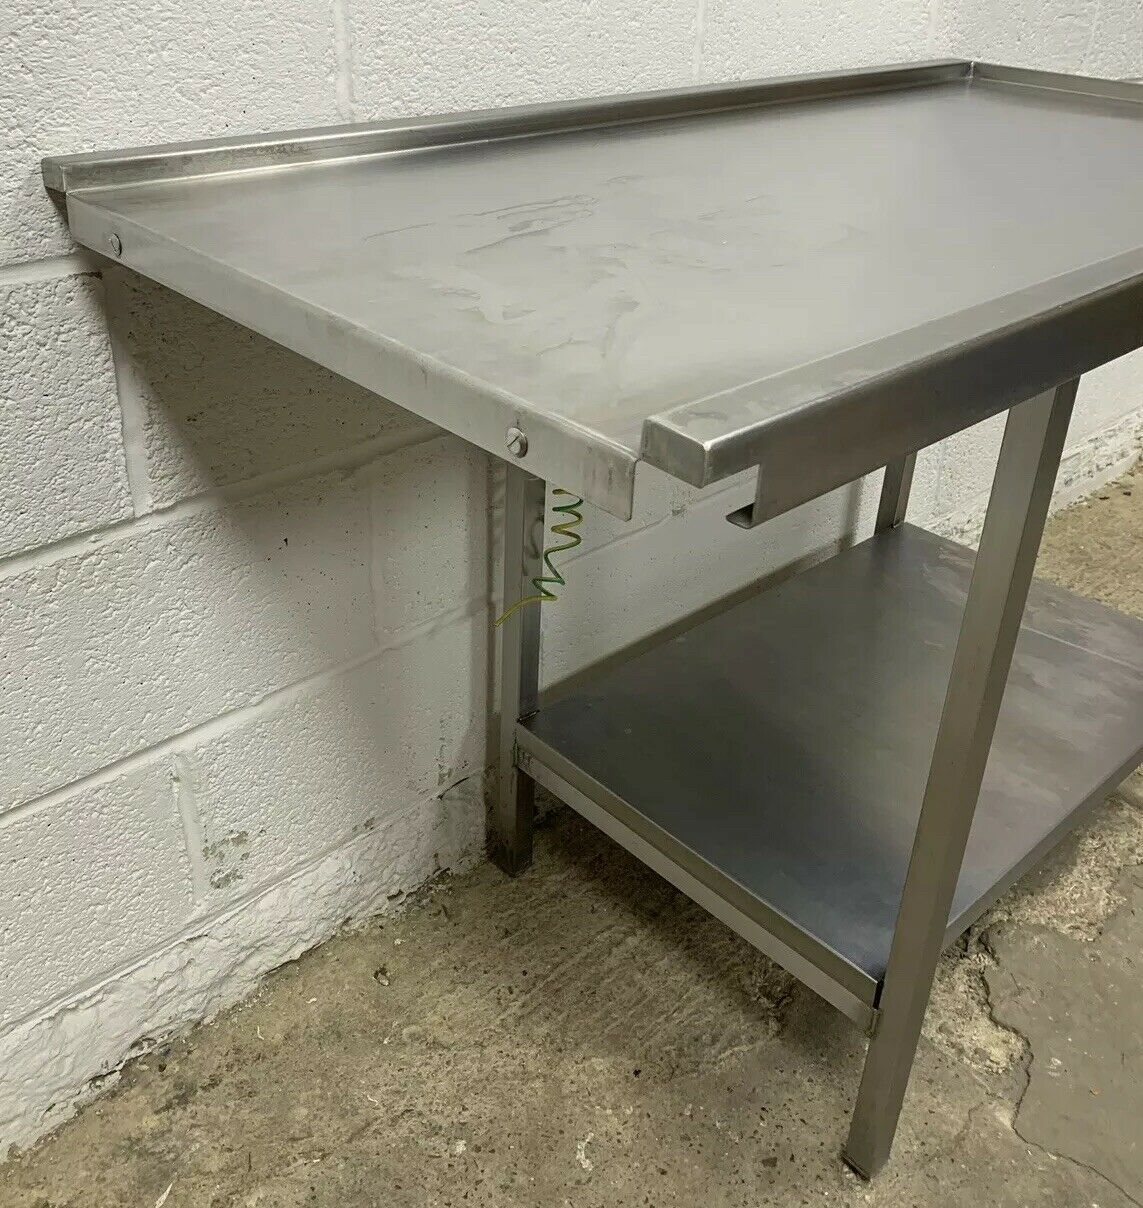 Stainless Steel Dishwasher Outlet / Exit Table - Image 2 of 4